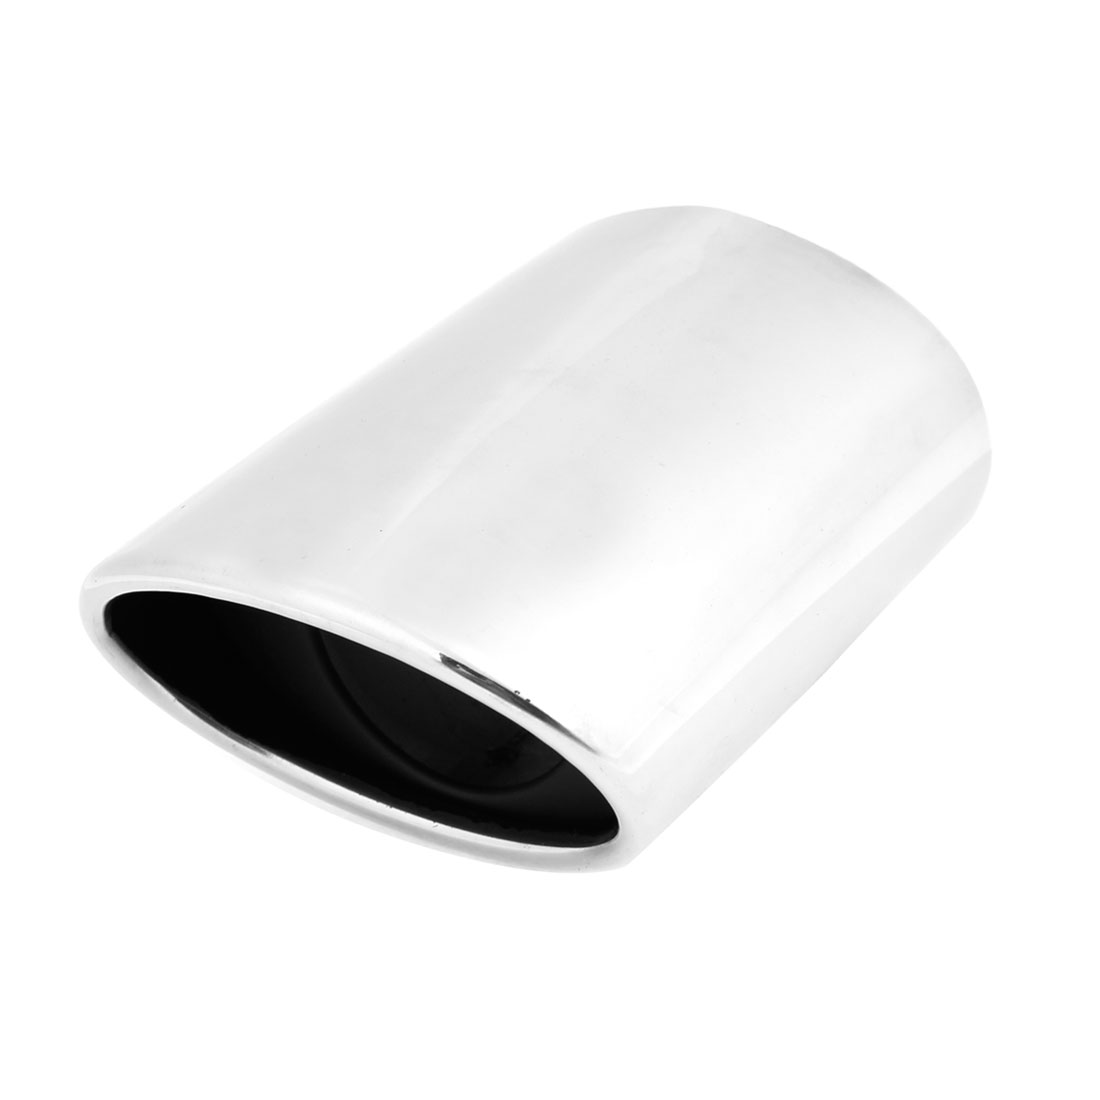 Oval Shaped Stainless Car Exhaust Pipe Silencer Muffler Tip for Honda